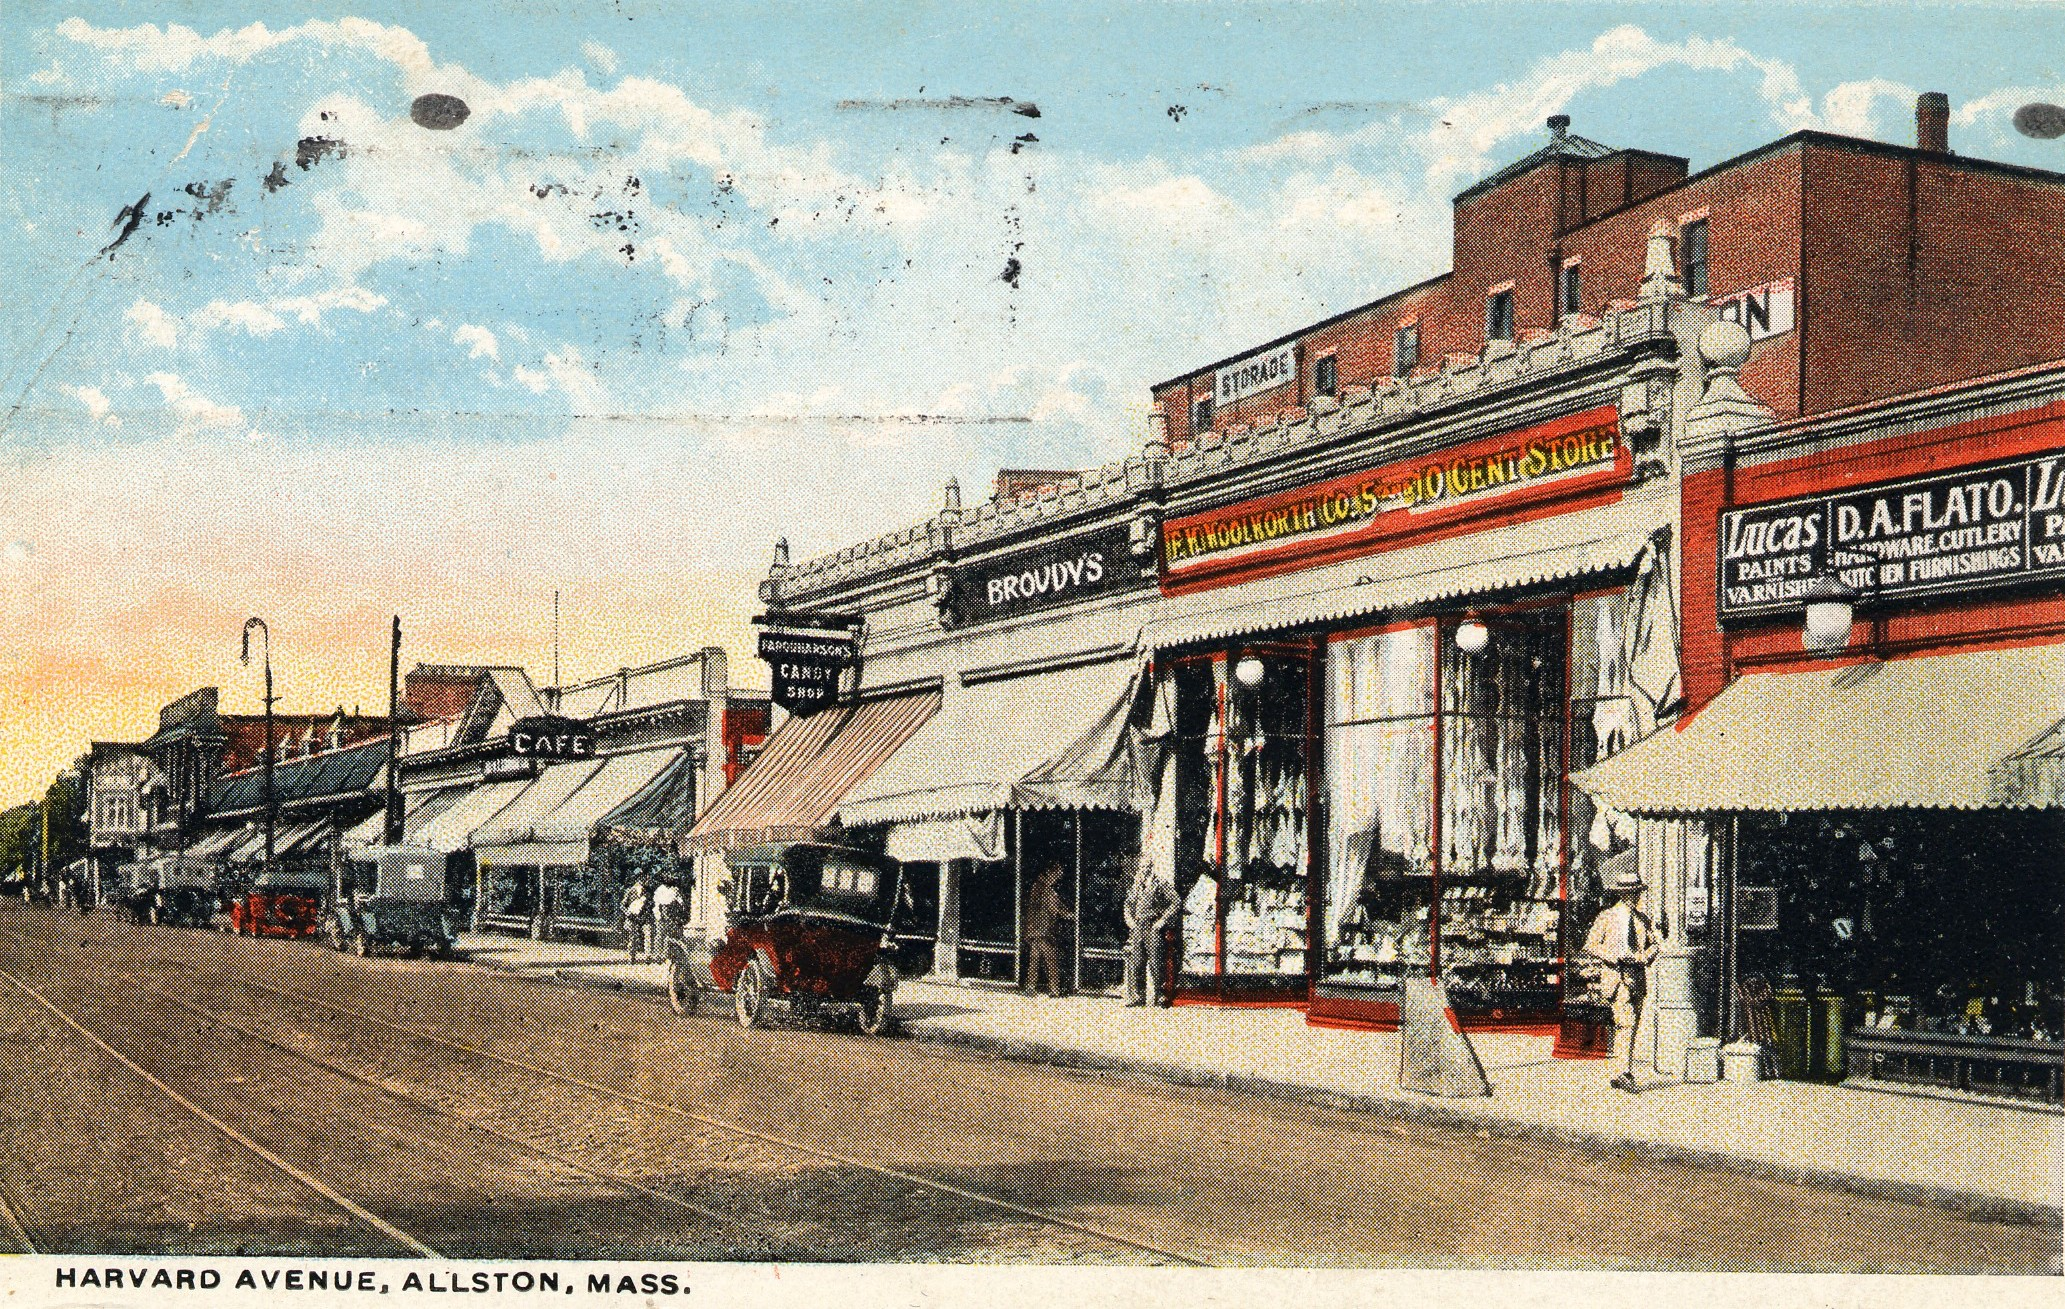 Postcard Of Harvard Avenue In Allston Village, Between Commonwealth And Brighton Avenues, 1921. Courtesy Of The Brighton-Allston Historical Society.